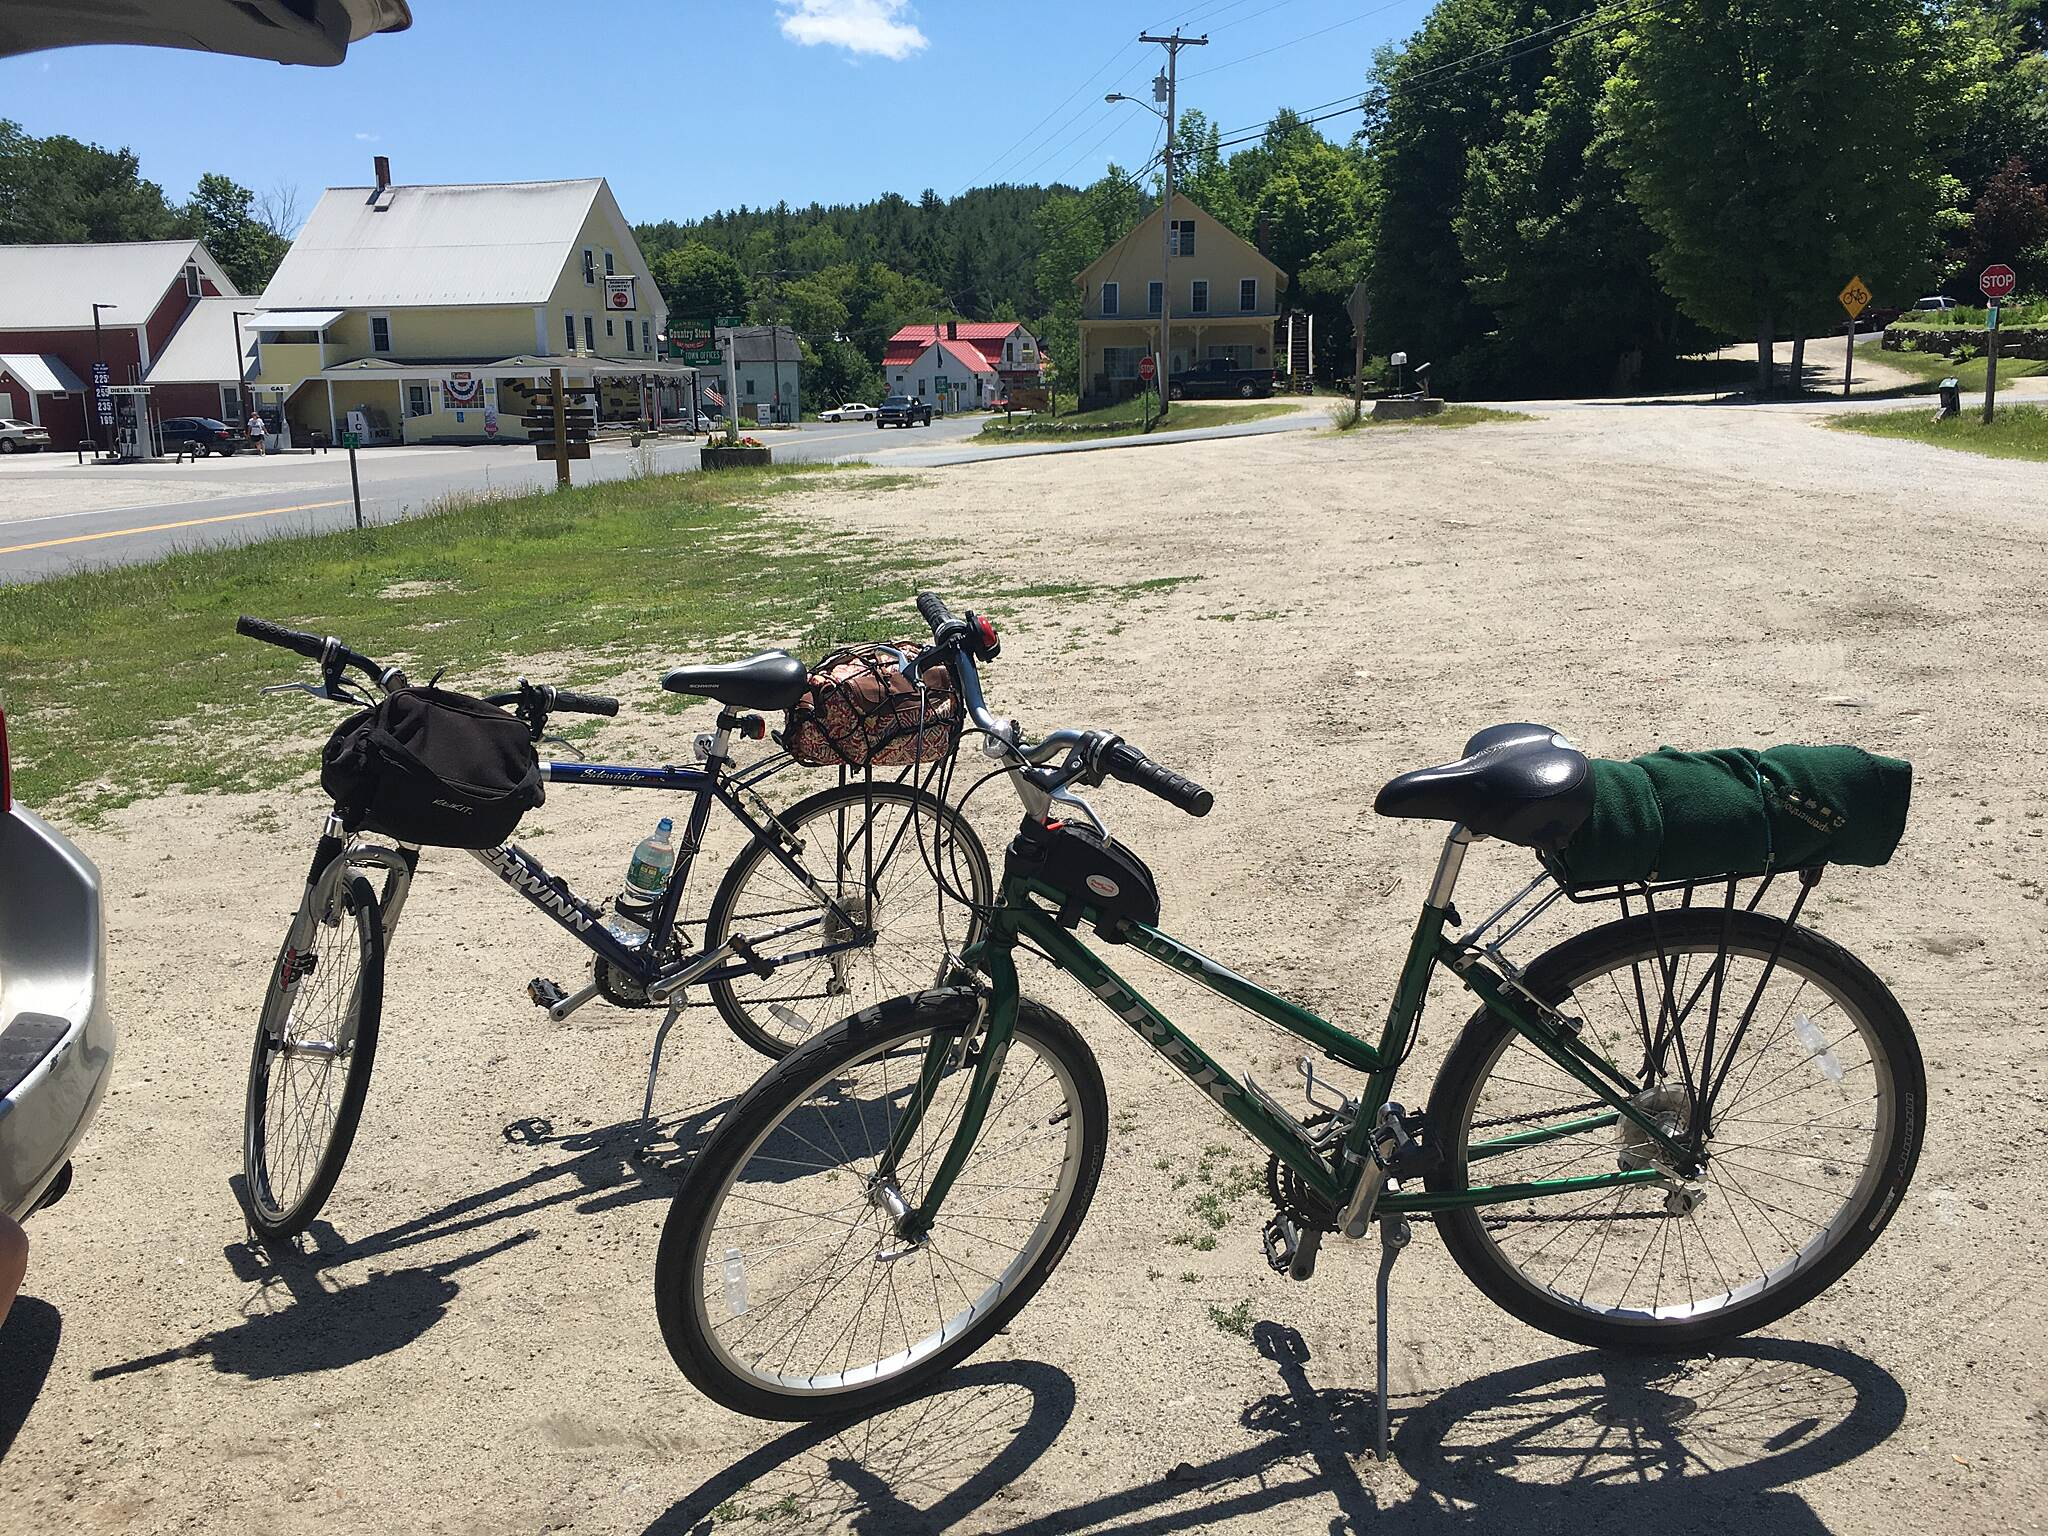 Northern Rail Trail Danbury across from country store - great stop for food (lunch & ice cream!) also has very clean bathroom